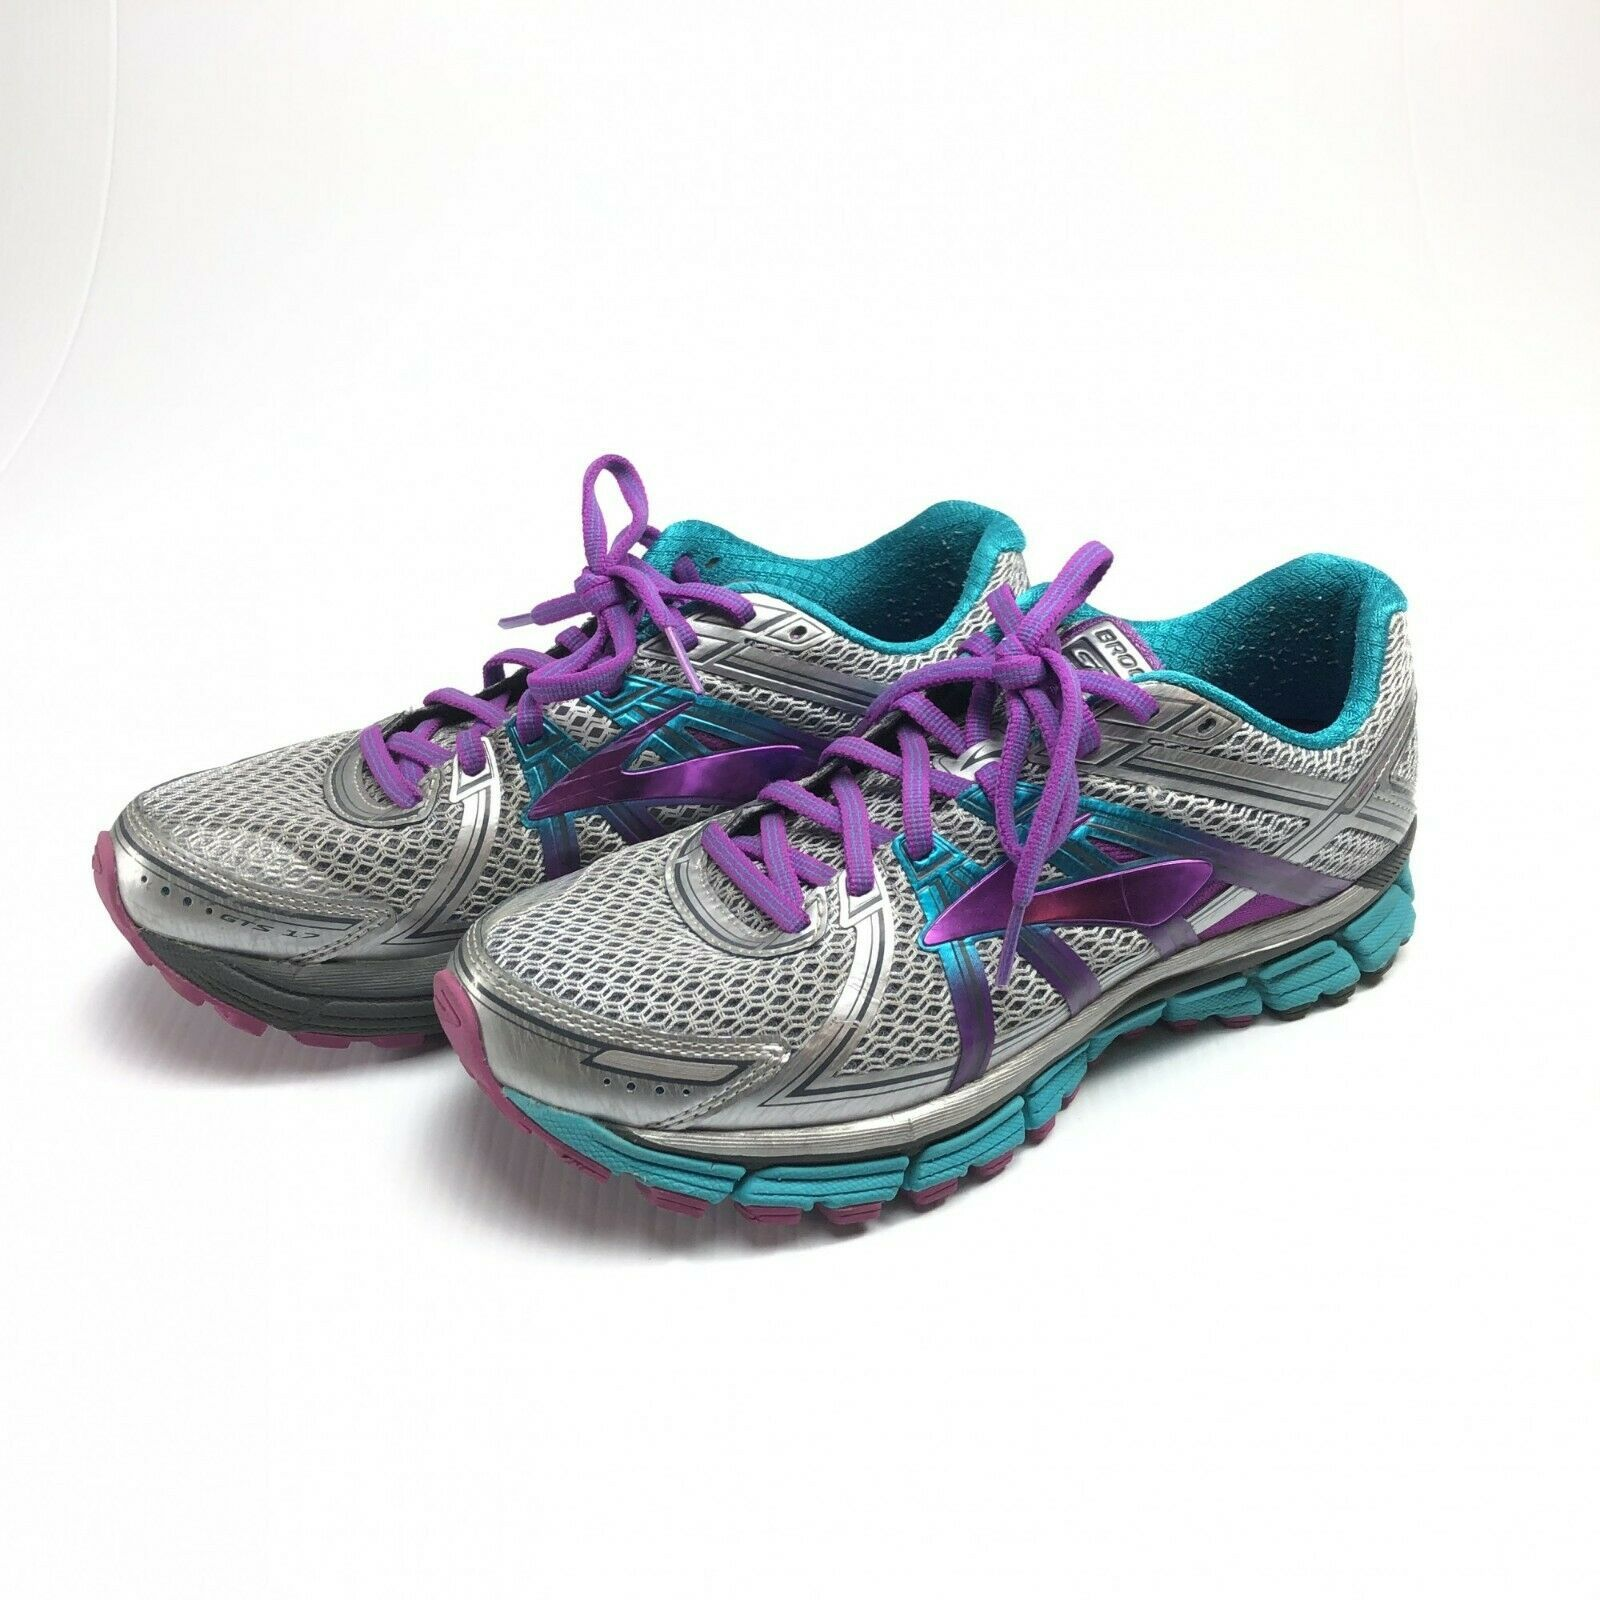 Brooks Silver And Purple Gts 17 Running Shoes Womens 10 In 2020 Womens Running Shoes Women Shoes Running Shoe Reviews